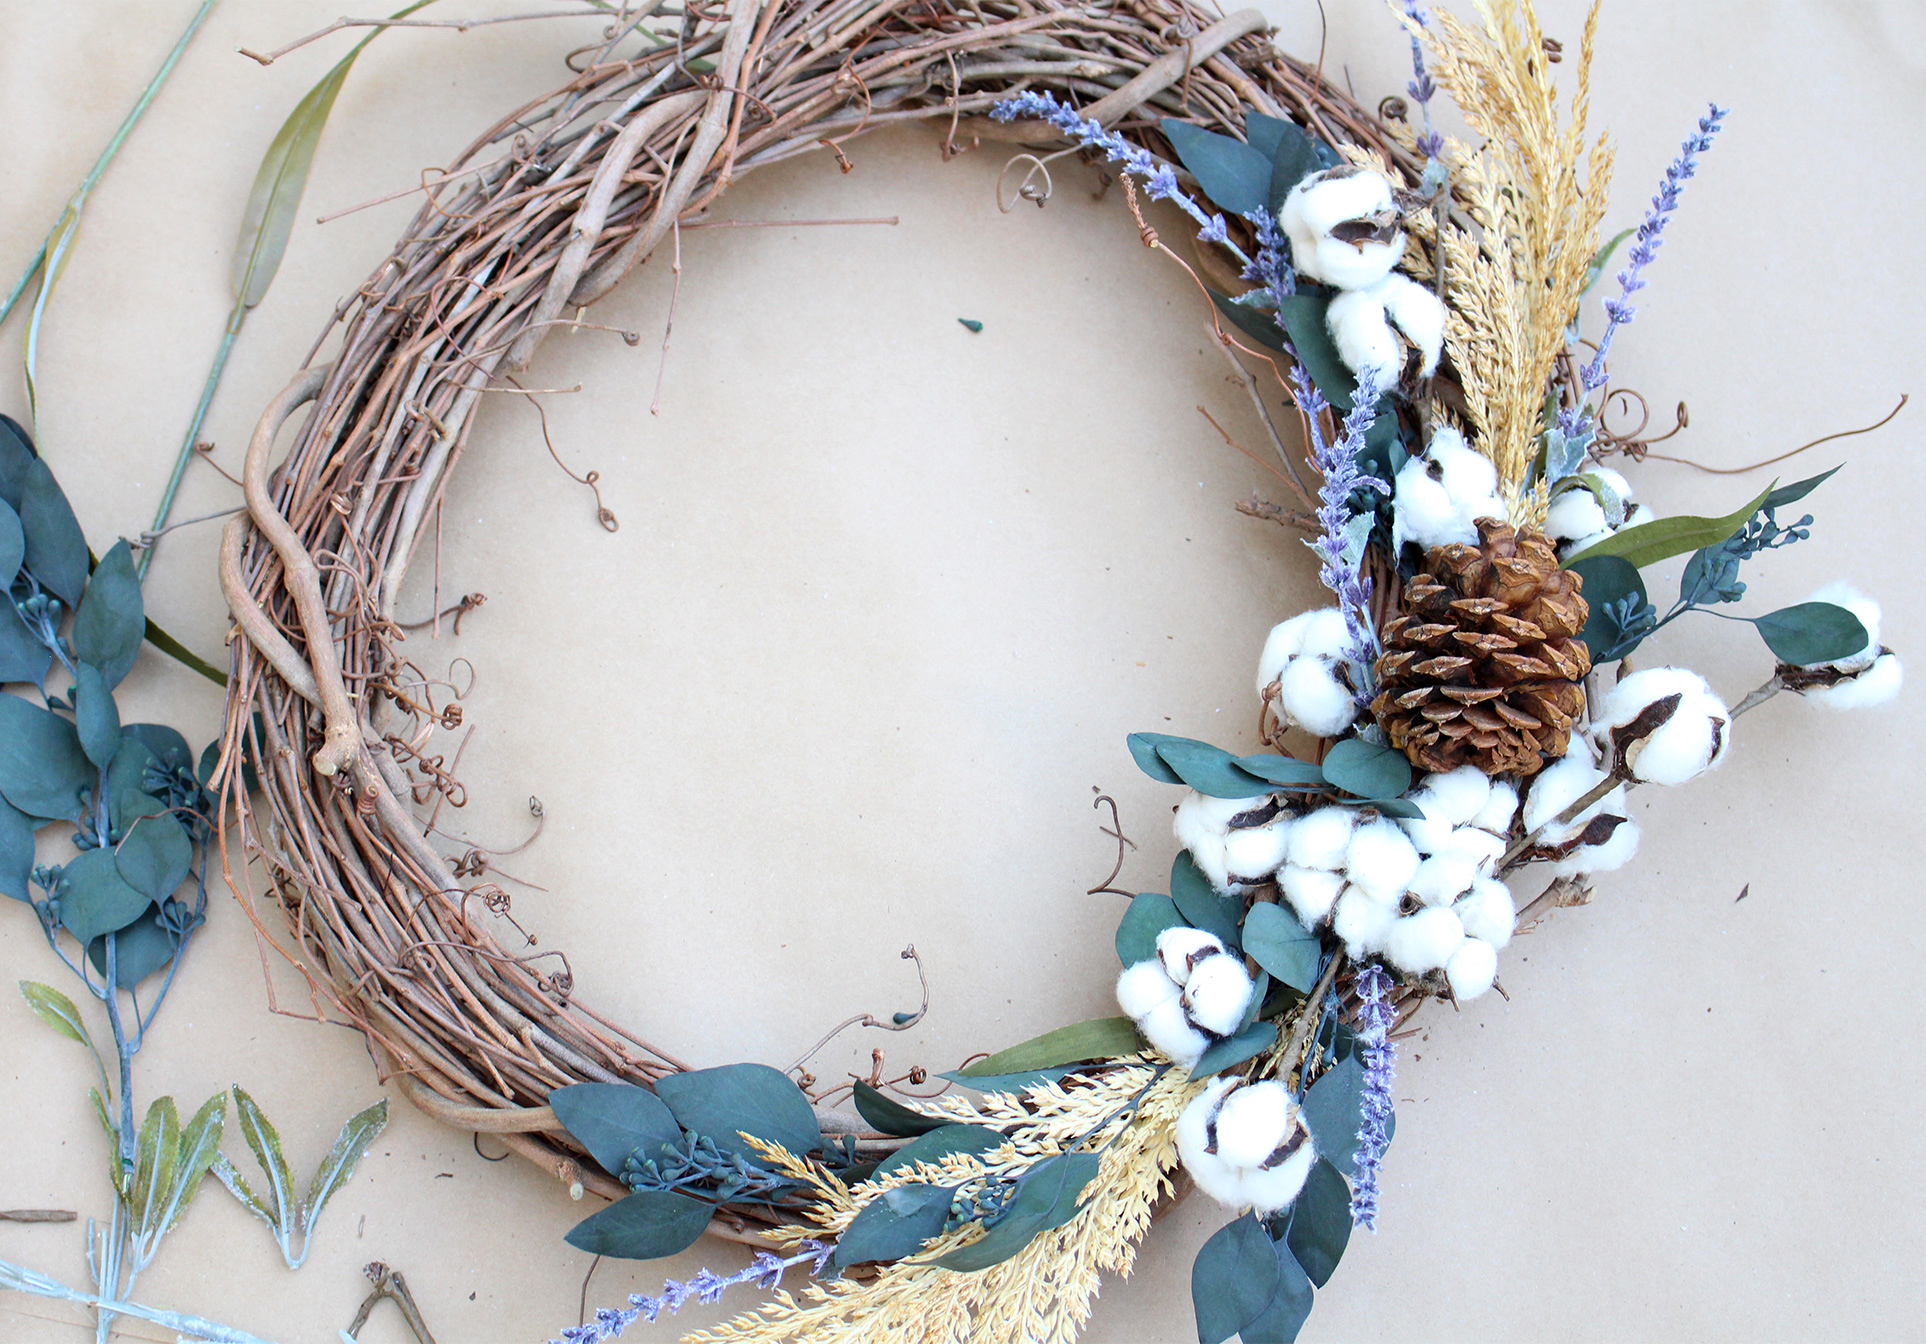 Use raw cotton, lavender, eucalyptus and pinecones to make a pretty DIY fall wreath